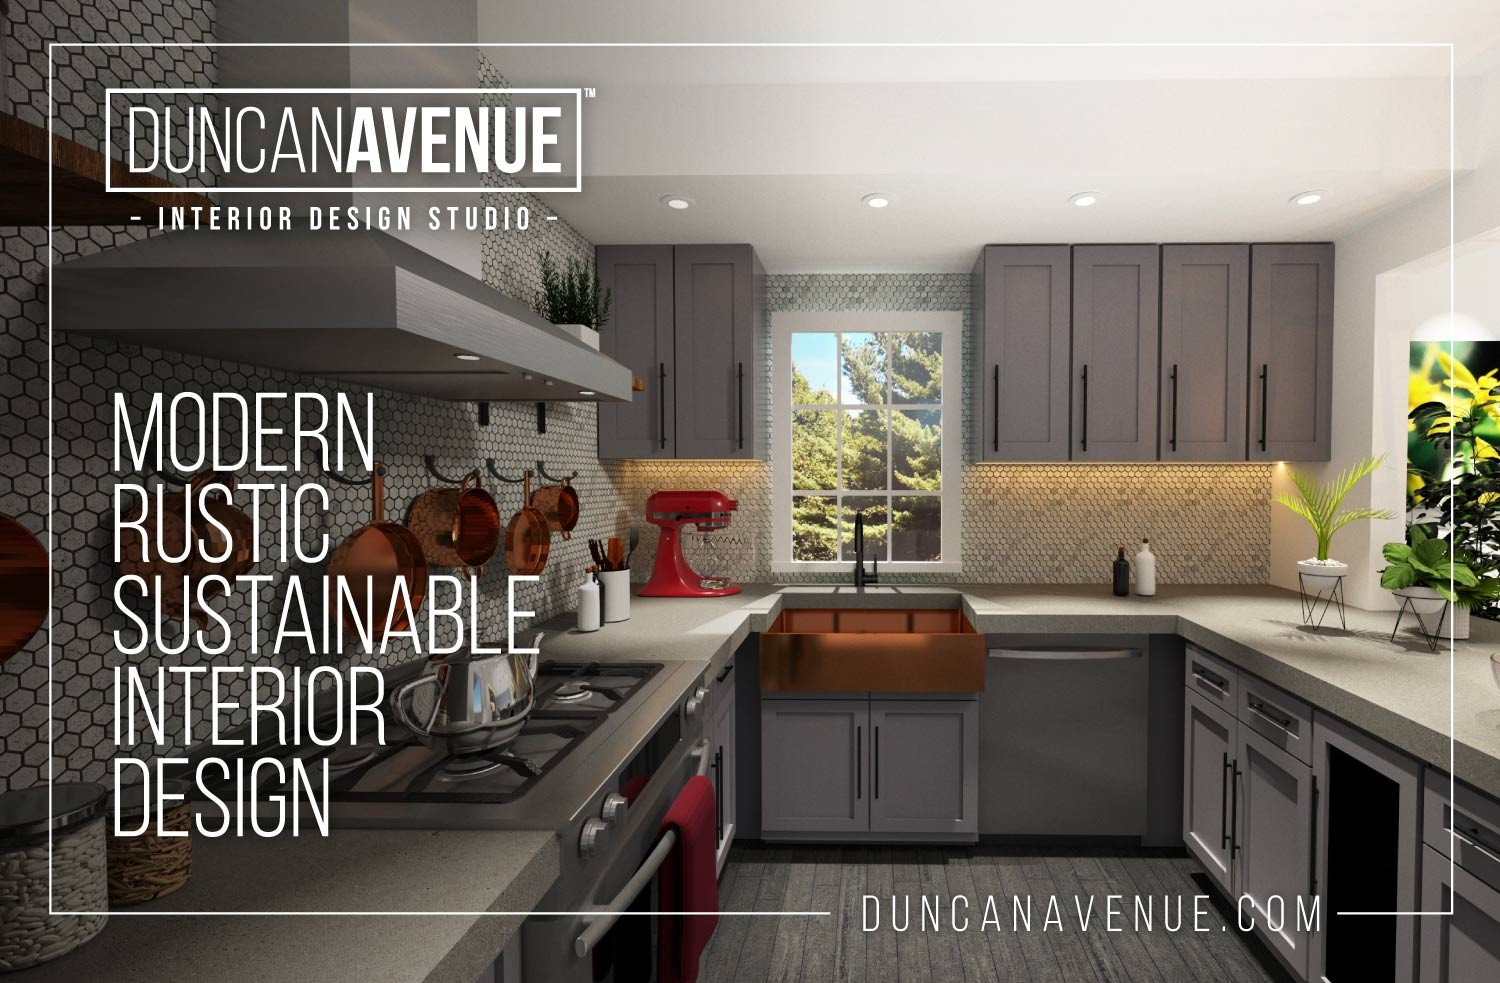 Duncan Avenue Interior Design Studio